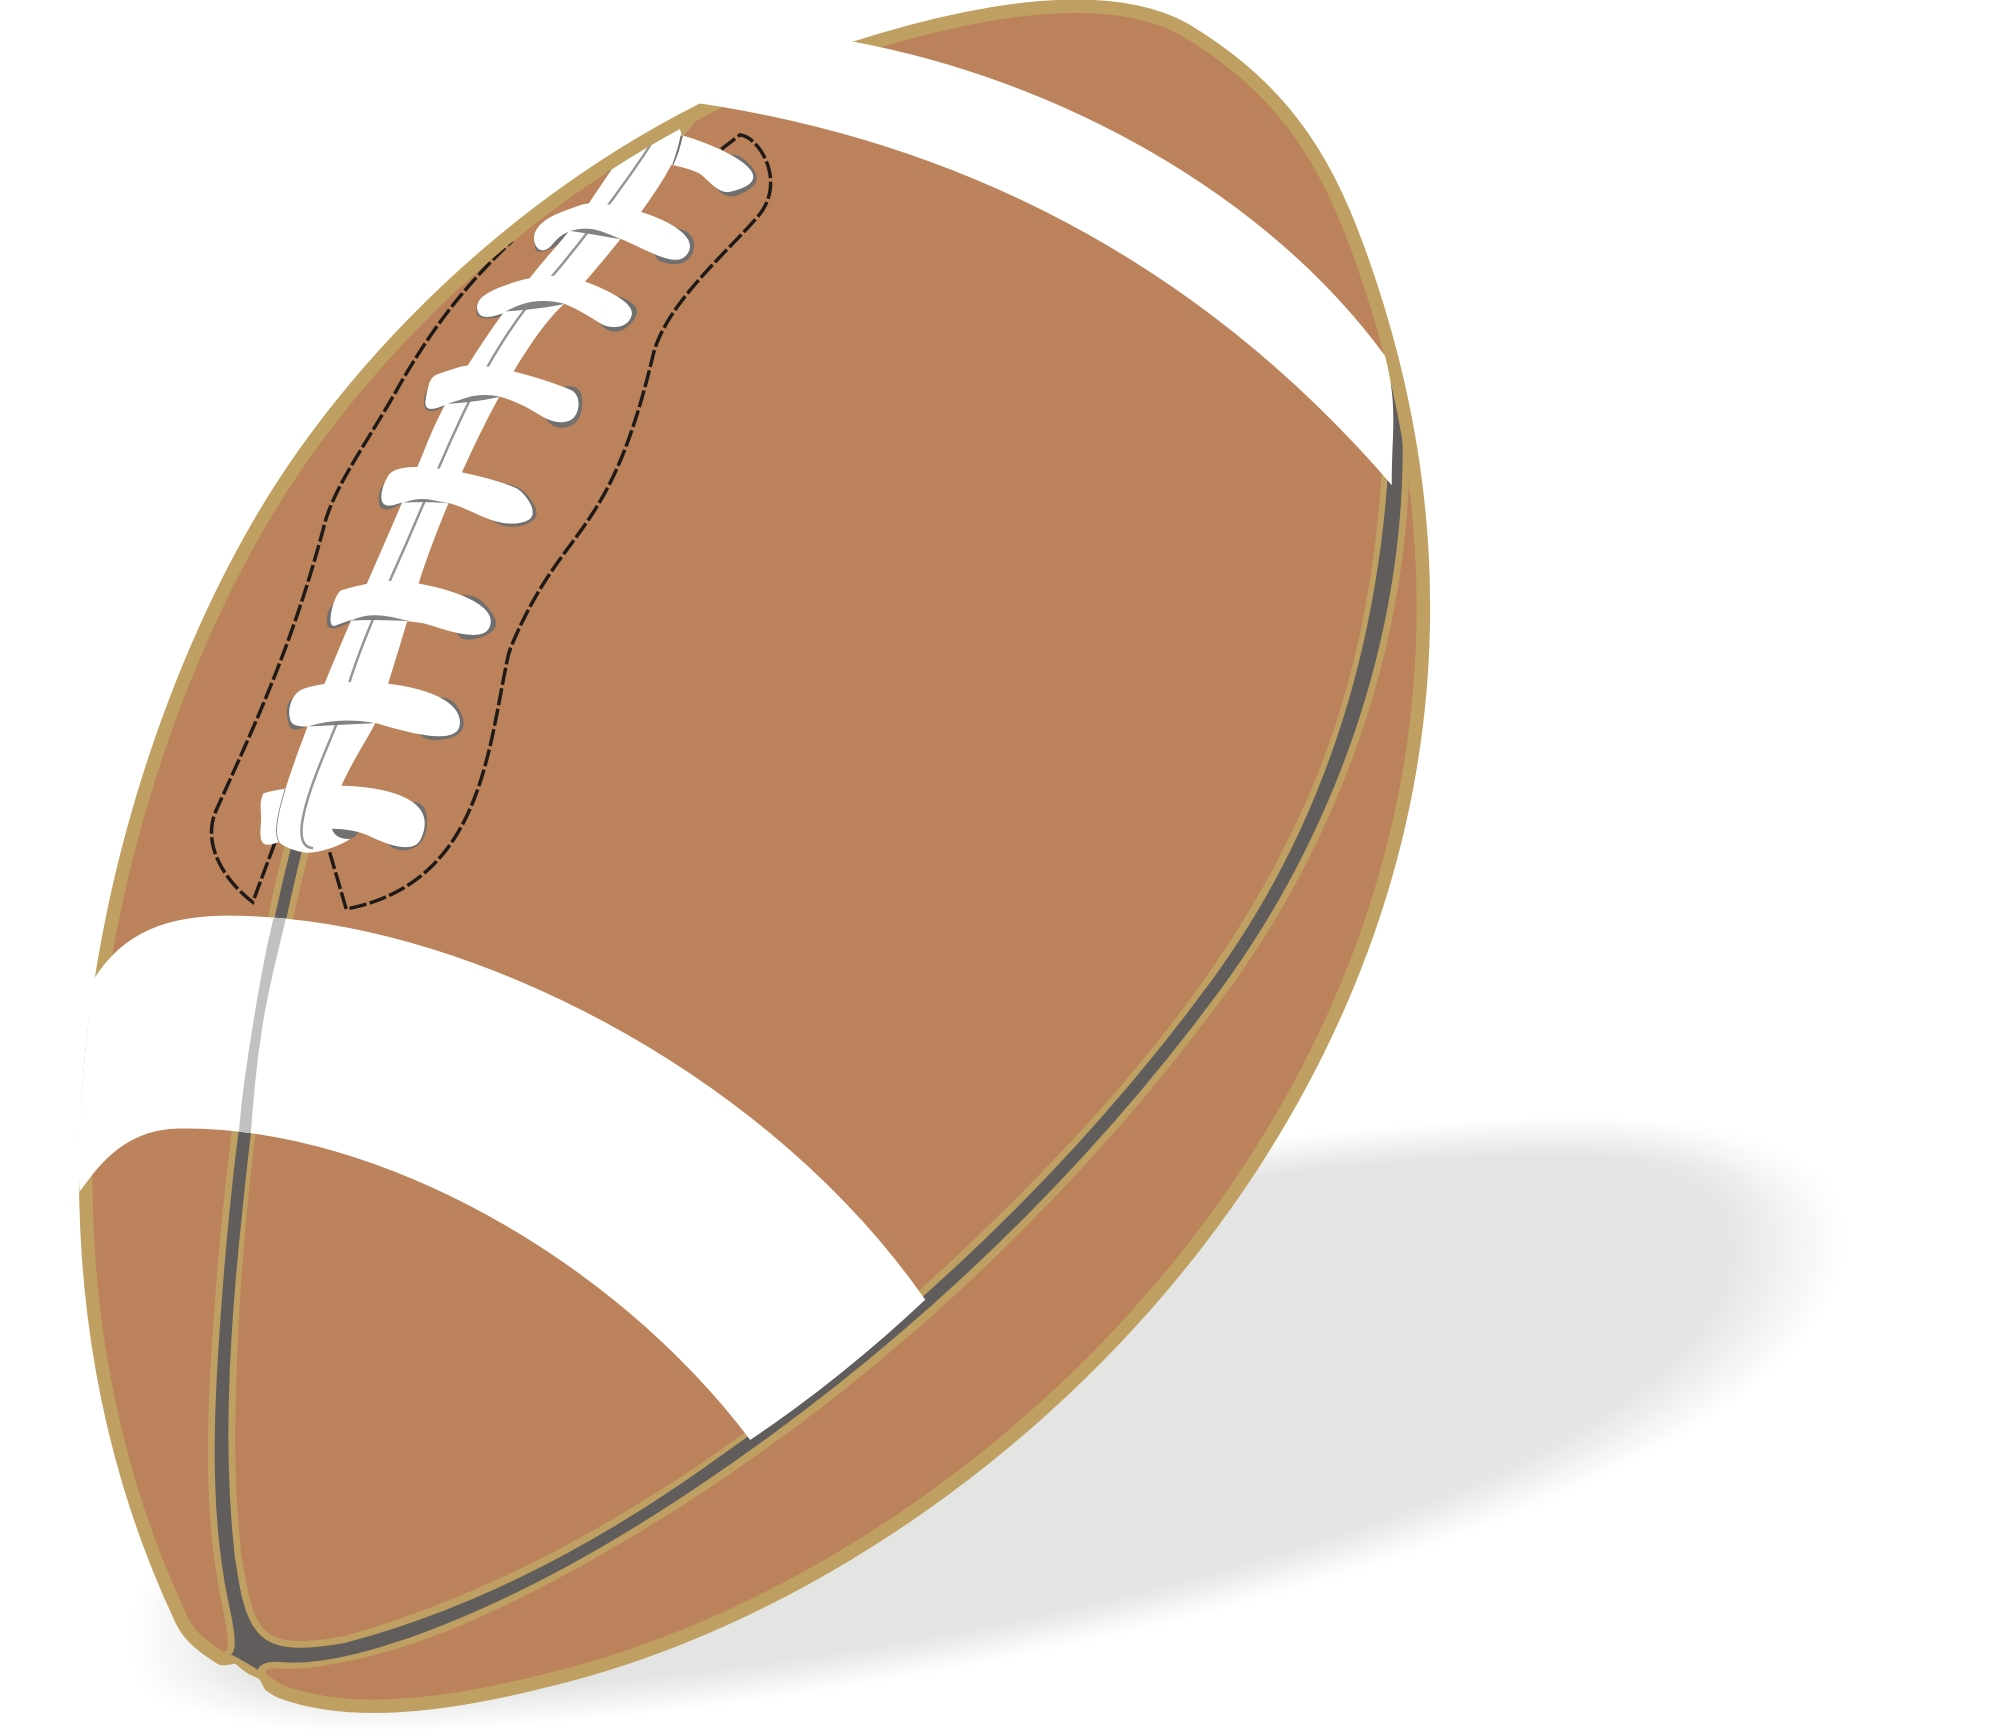 Free Picture Football, Download Free Clip Art, Free Clip Art.